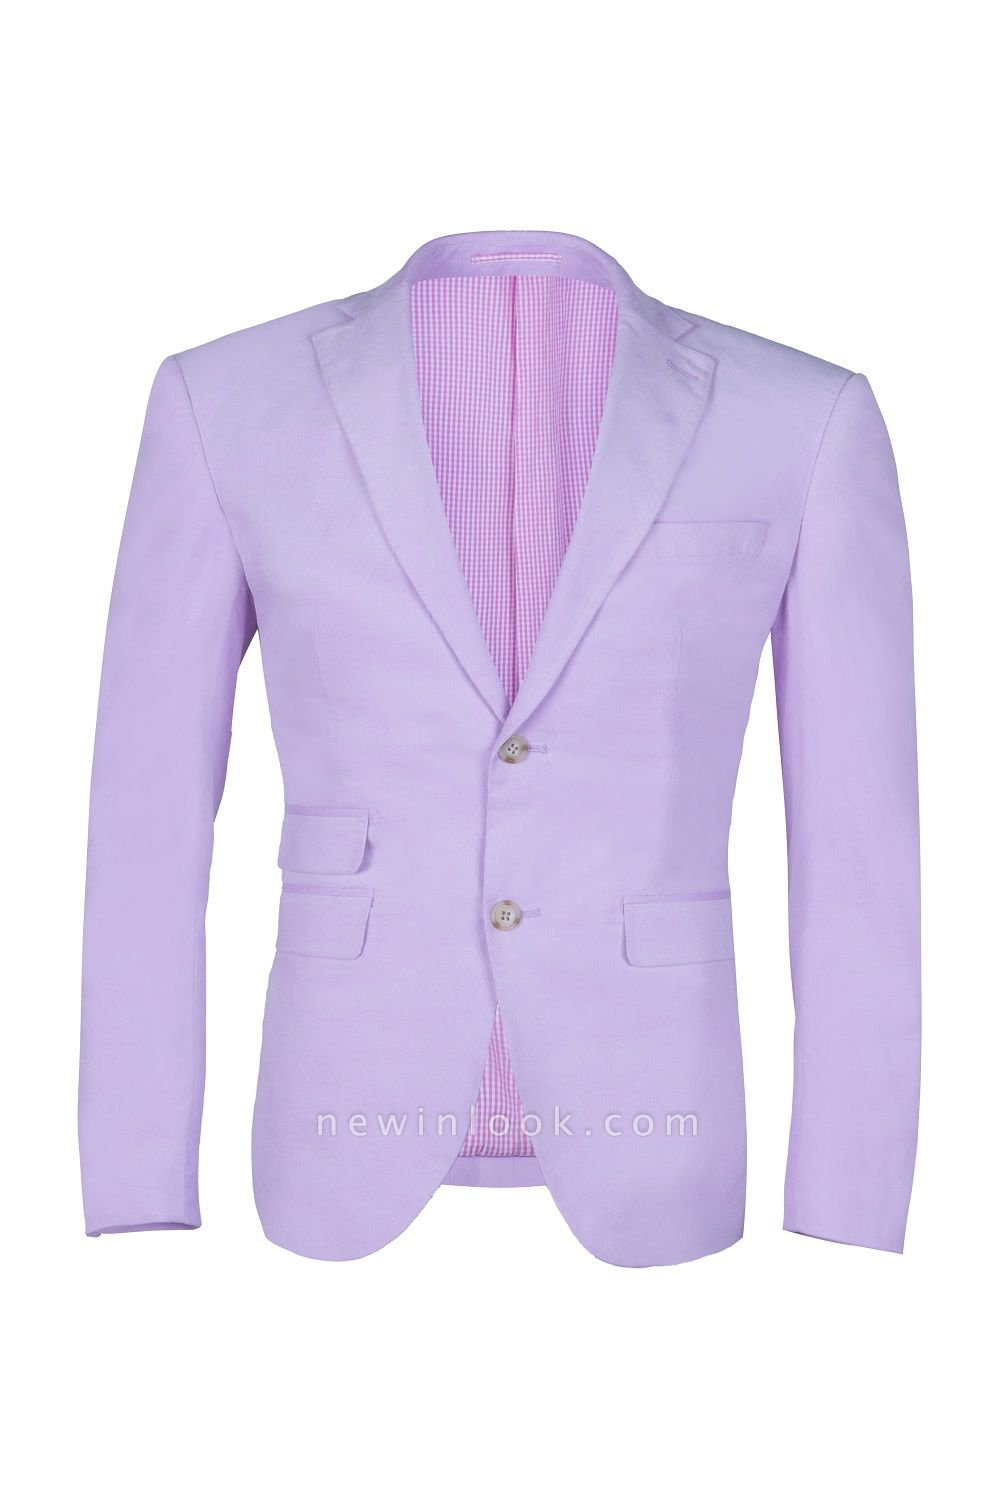 Custom Made Hot Recommend Lavender Peak Lapel Single Breasted Chambelanes Tuxedos